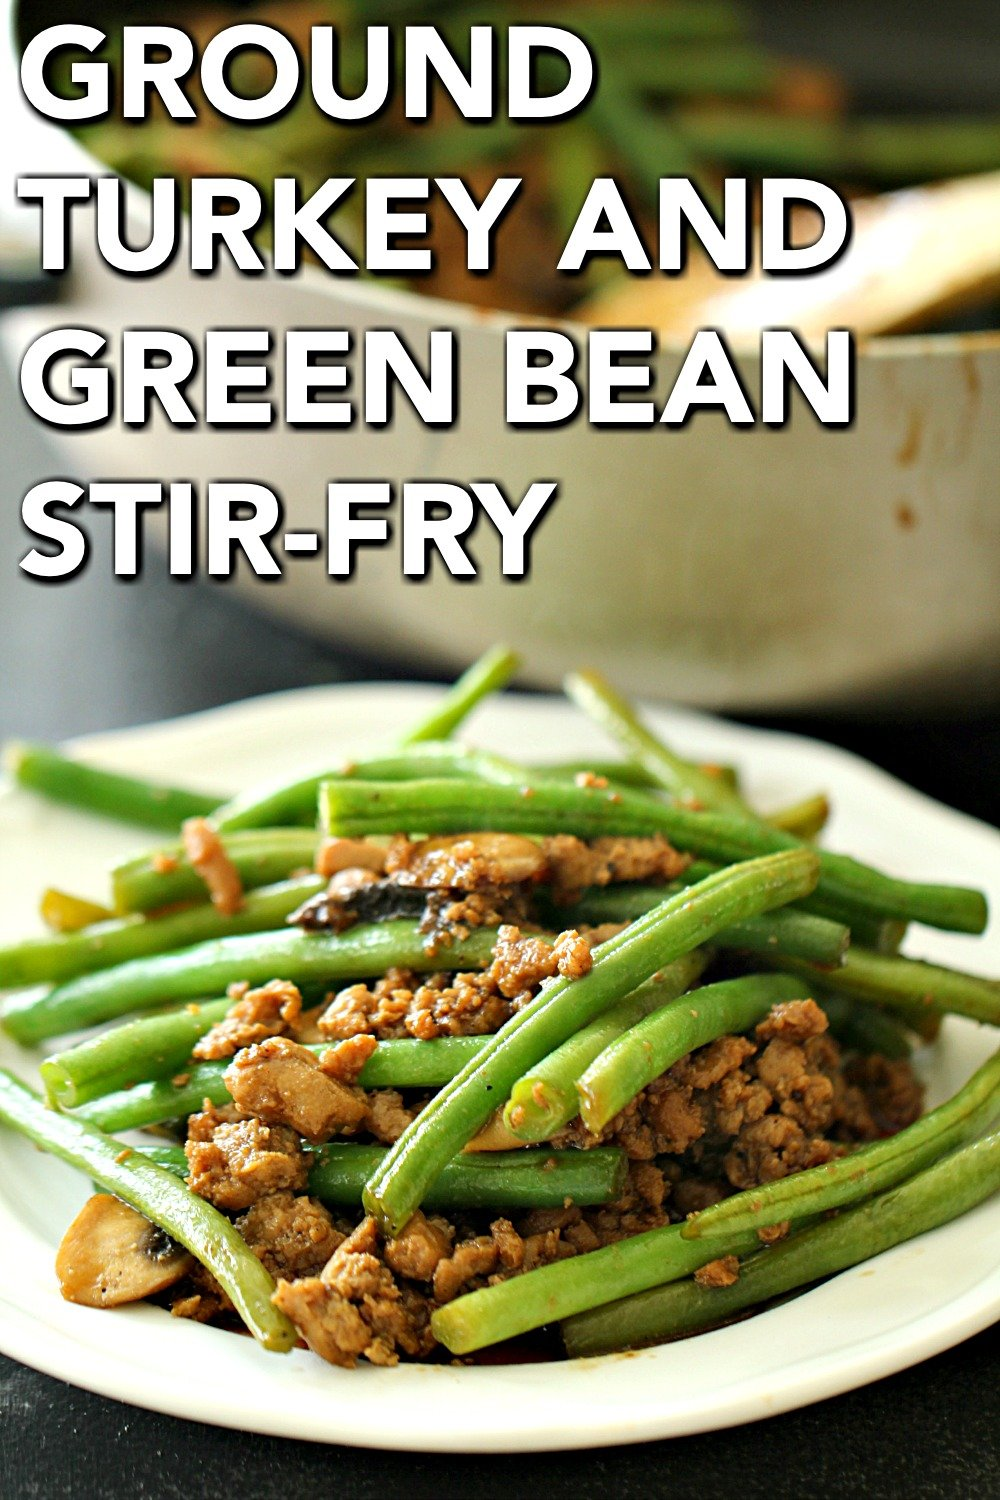 Chinese Ground Turkey and Green Bean Stir-Fry served on a white plate